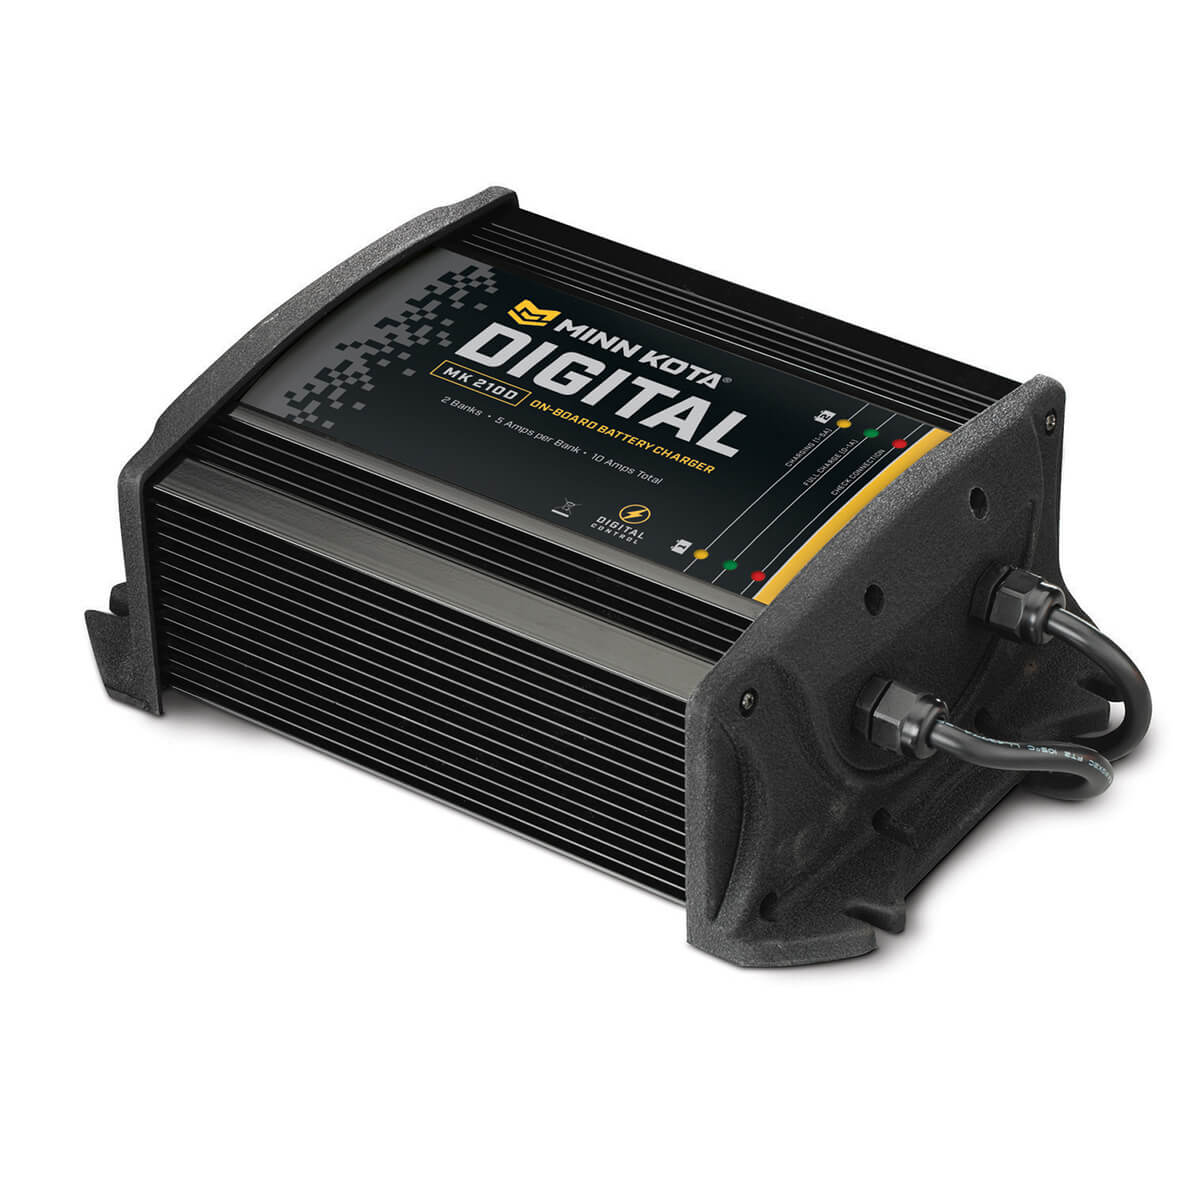 MK 210D 2 Bank x 5 Amps Digital Charger 1822105